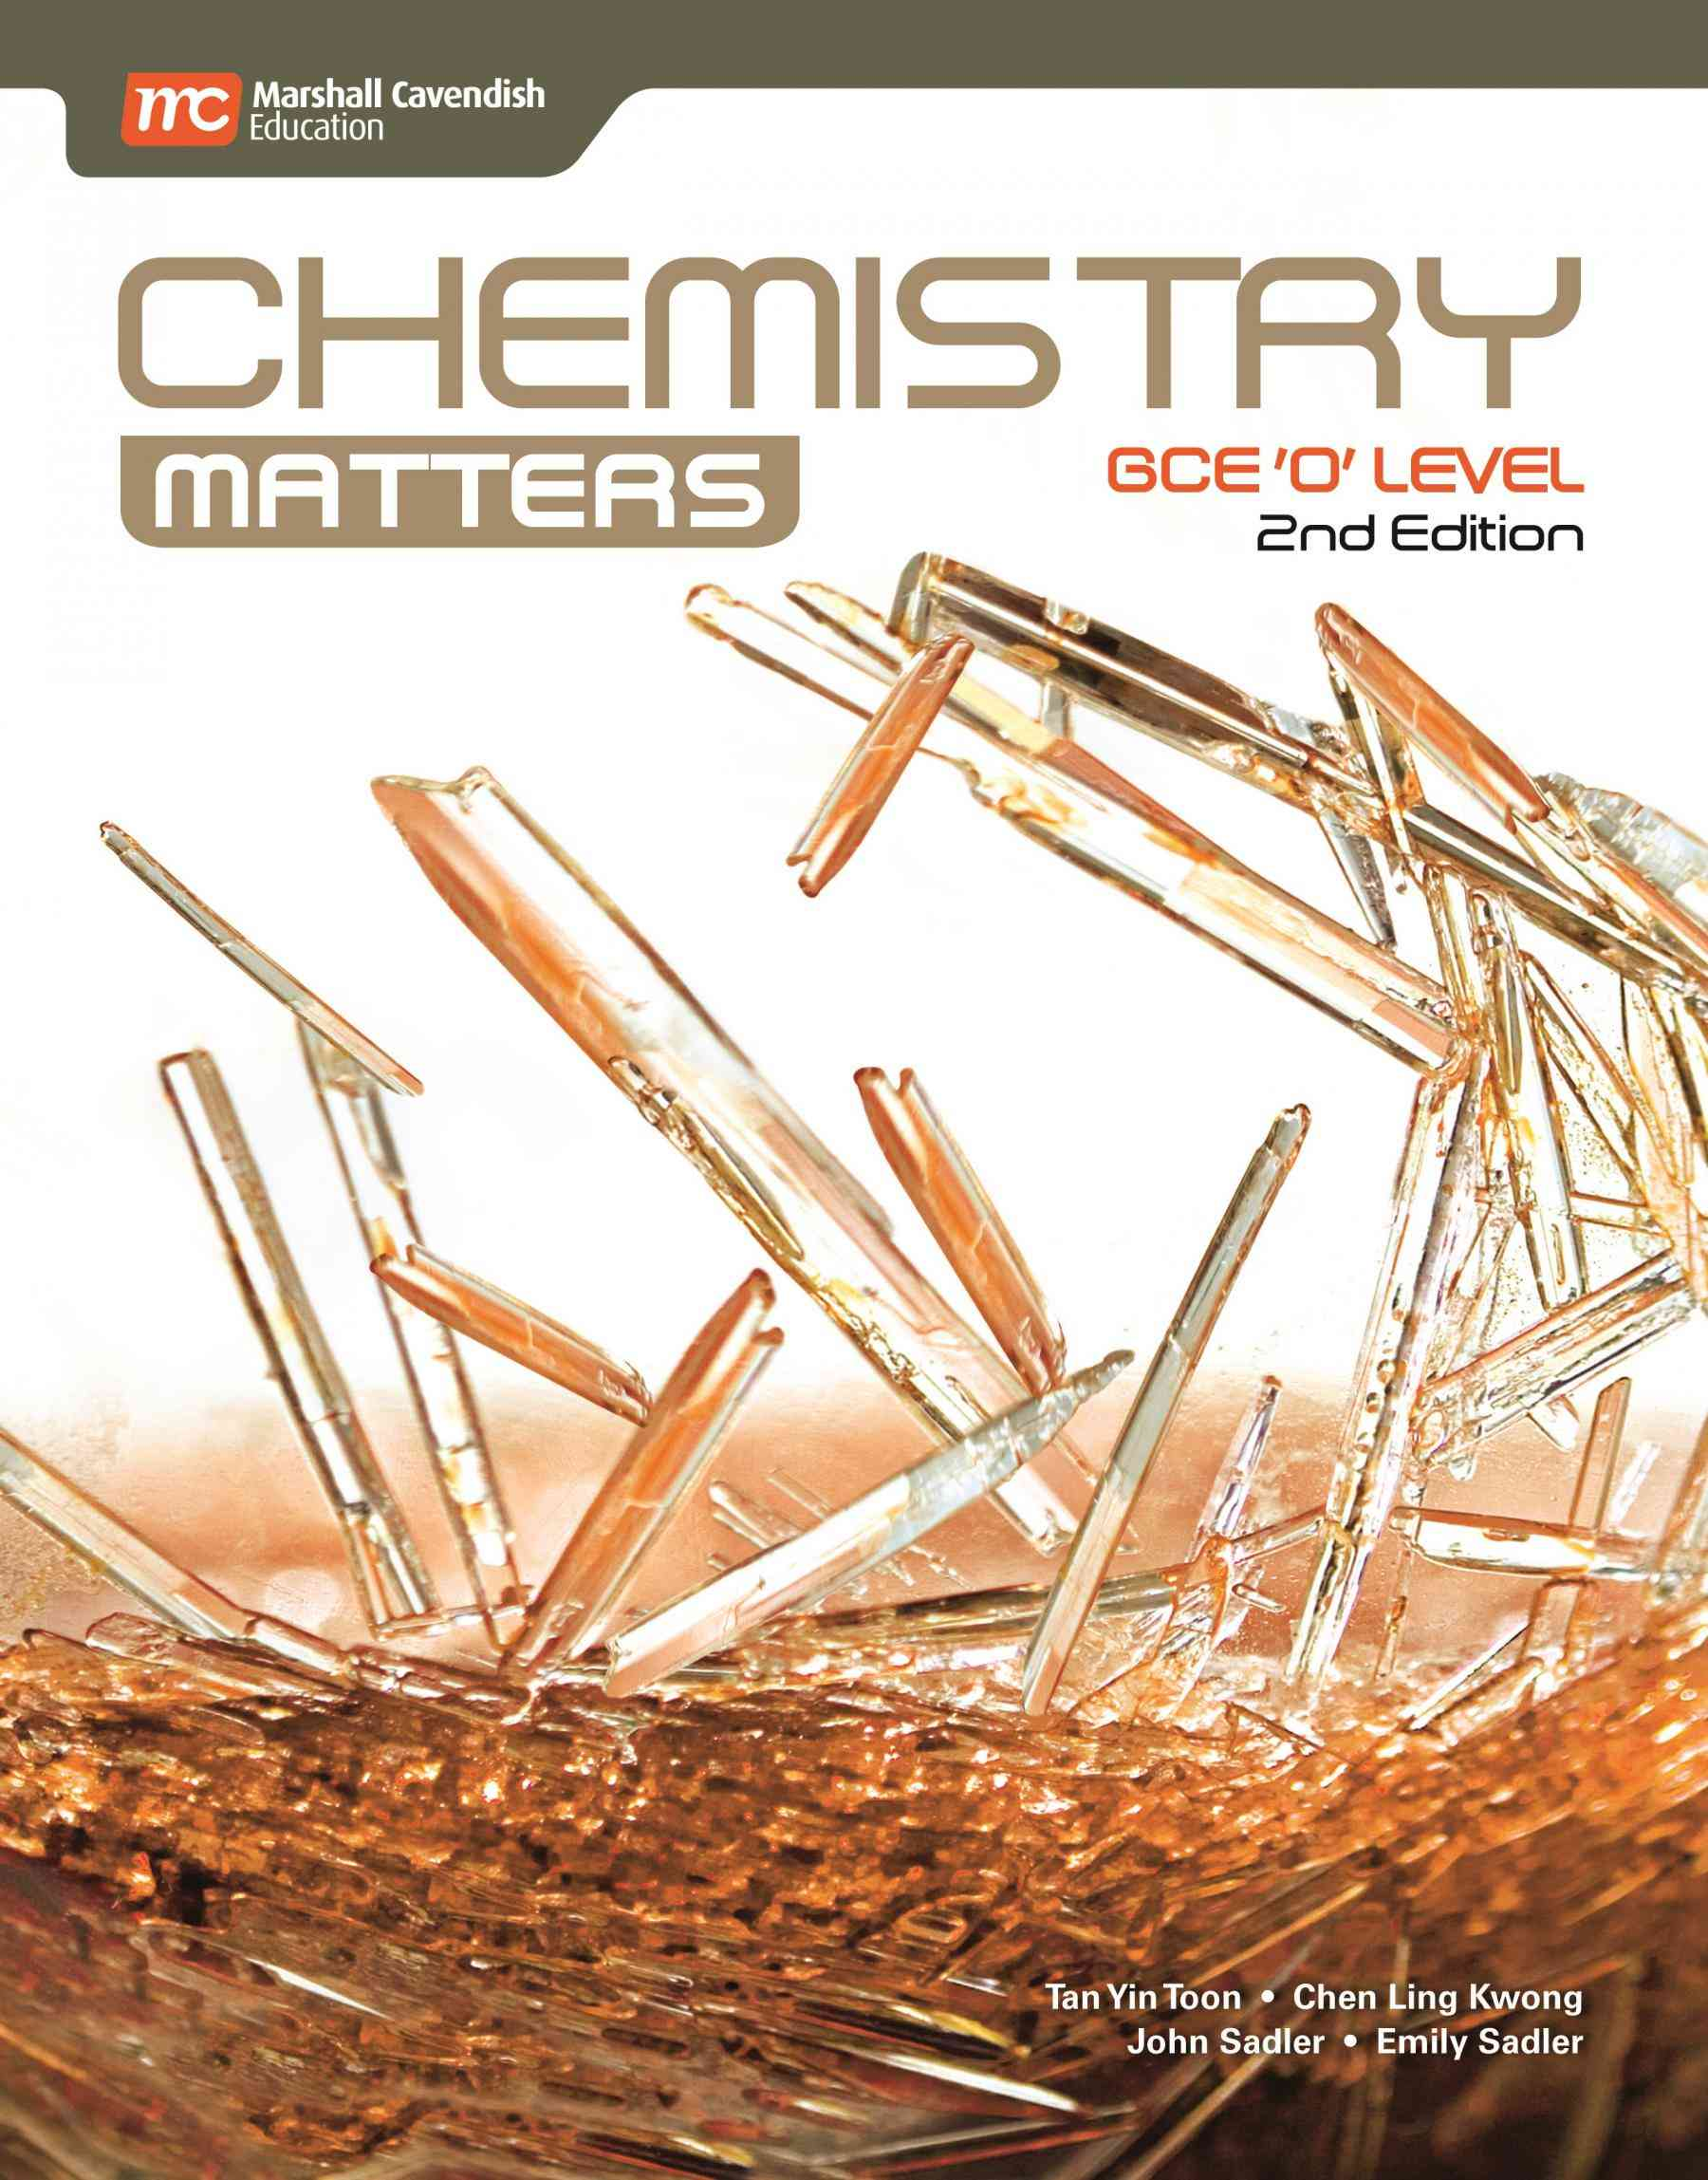 GCE O Level Chemistry Matters  2nd Edition  For Class 8